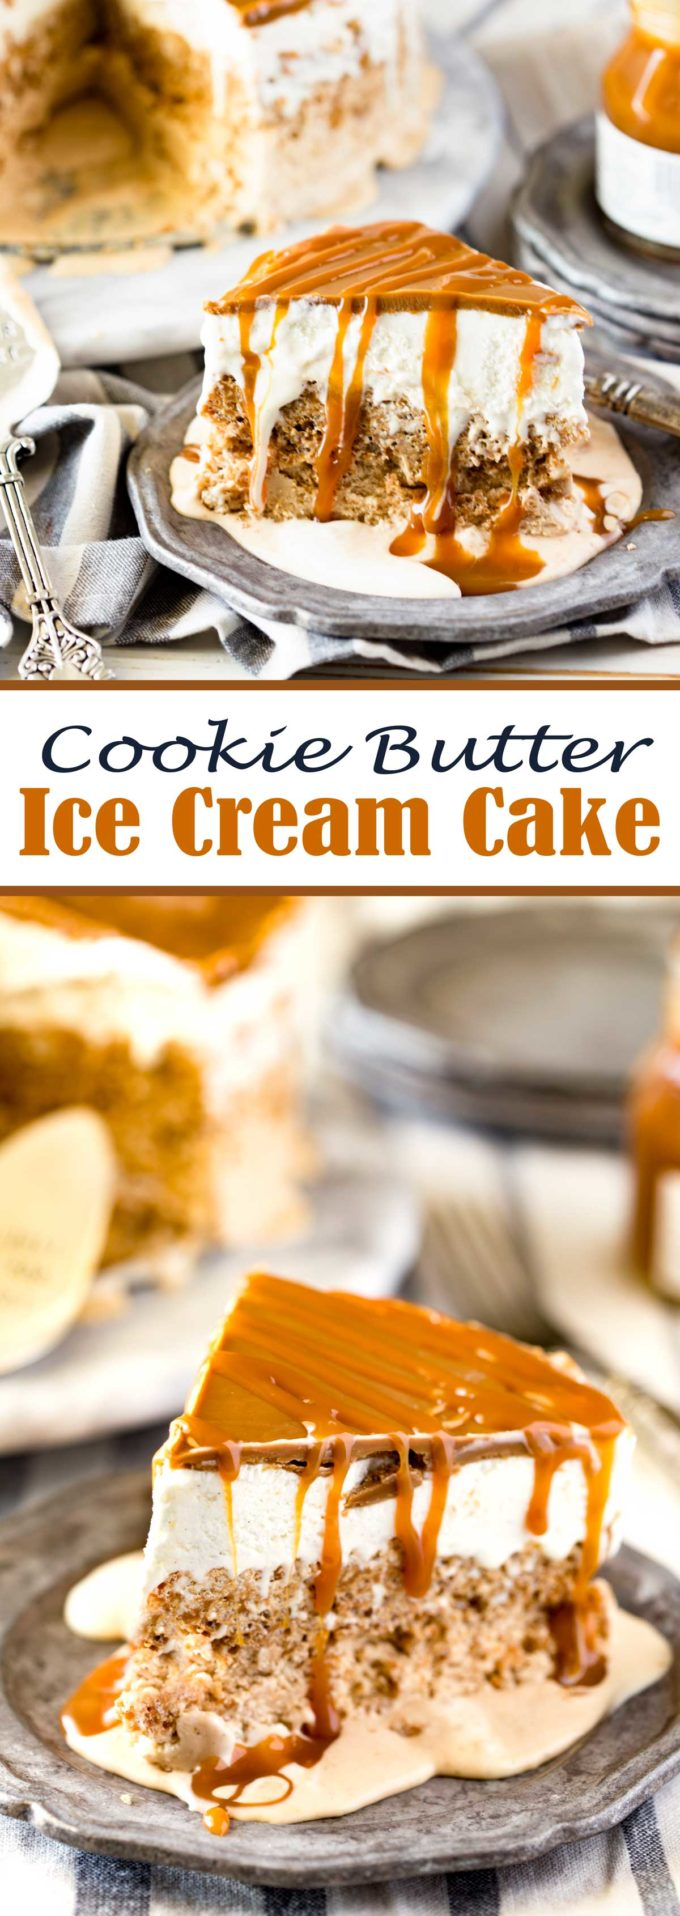 Cookie Butter Ice Cream Cake Recipe for Summer Dessert